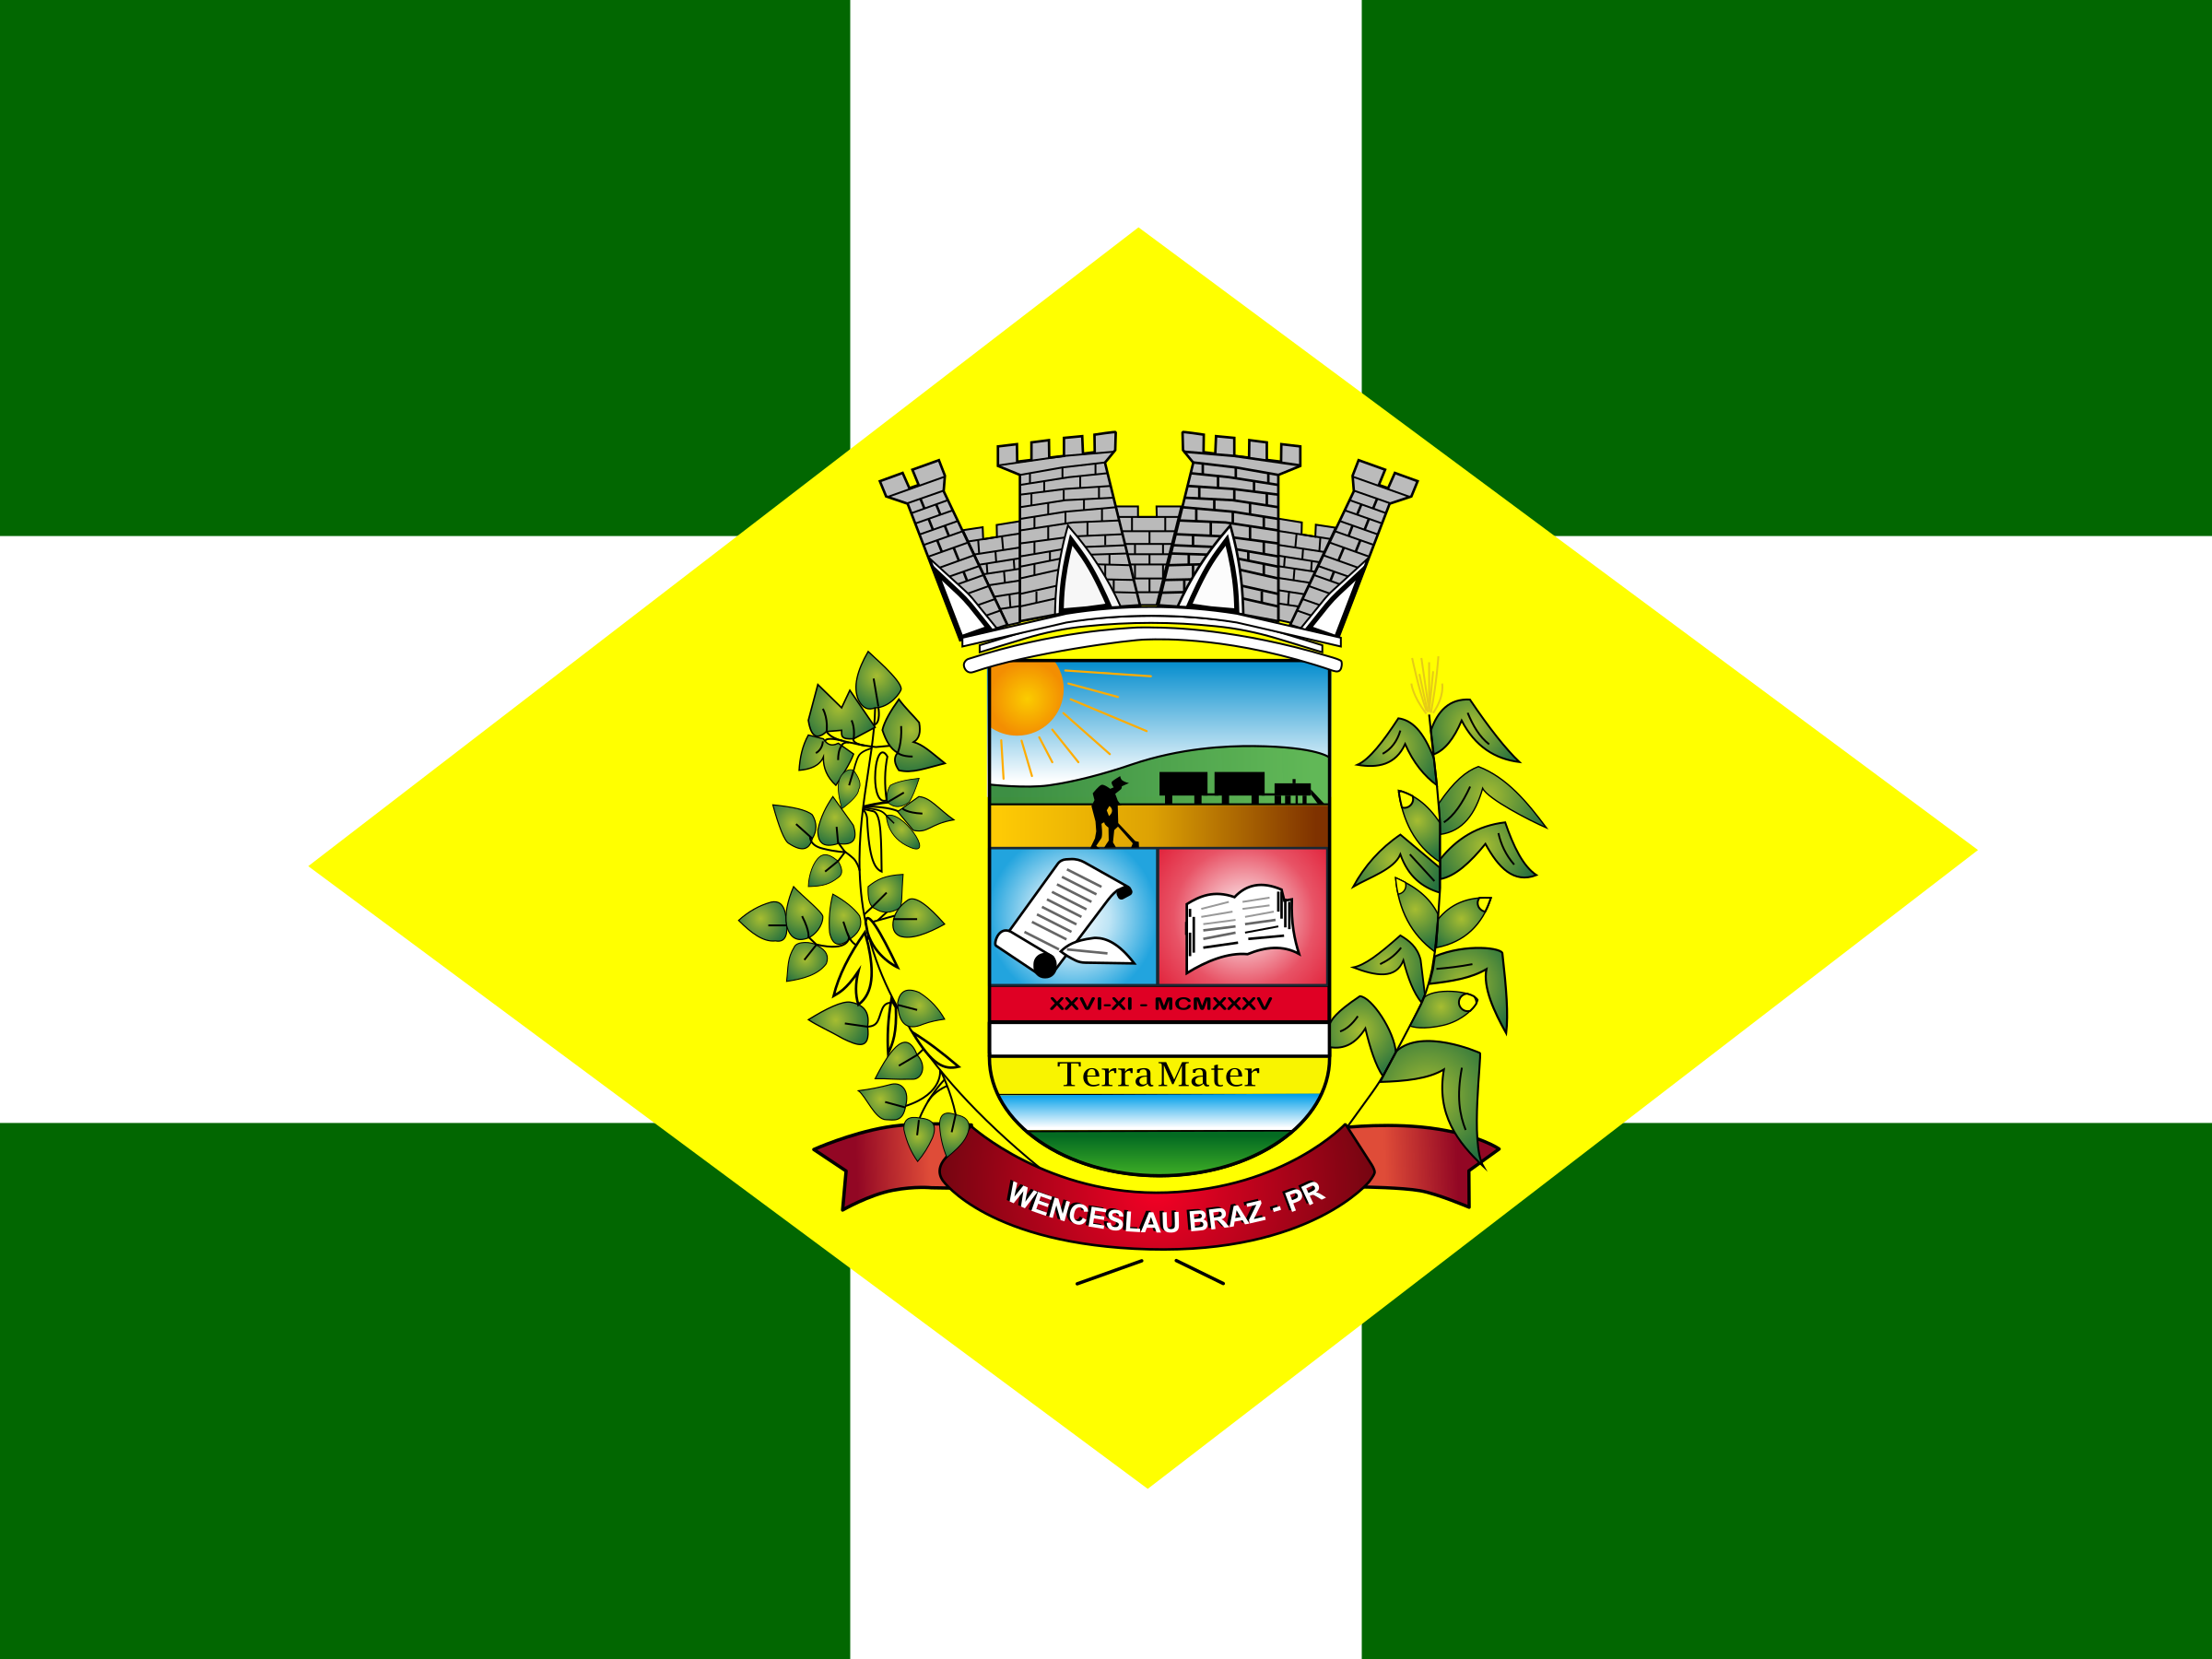 Flag of Wenceslau Braz, Bandeira de Wenceslau Braz by victorwestmann